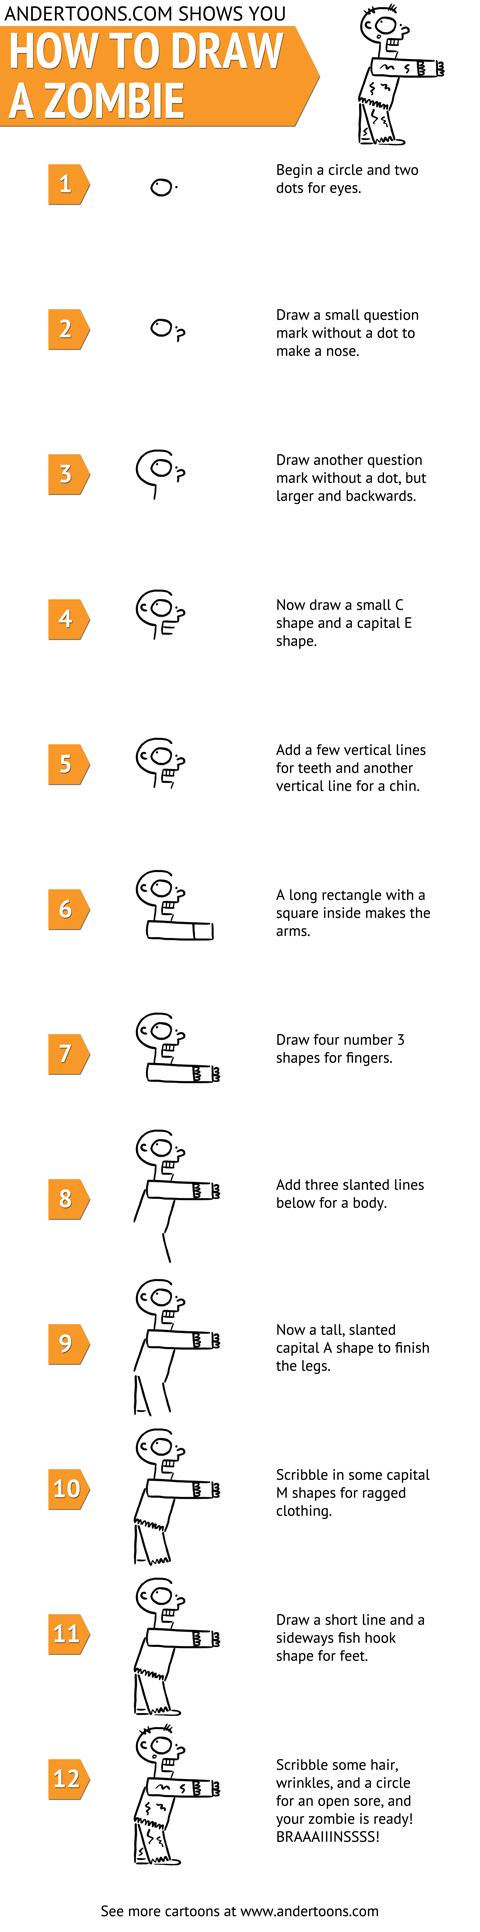 How to Draw a Zombie Without Losing Your Brrraaains